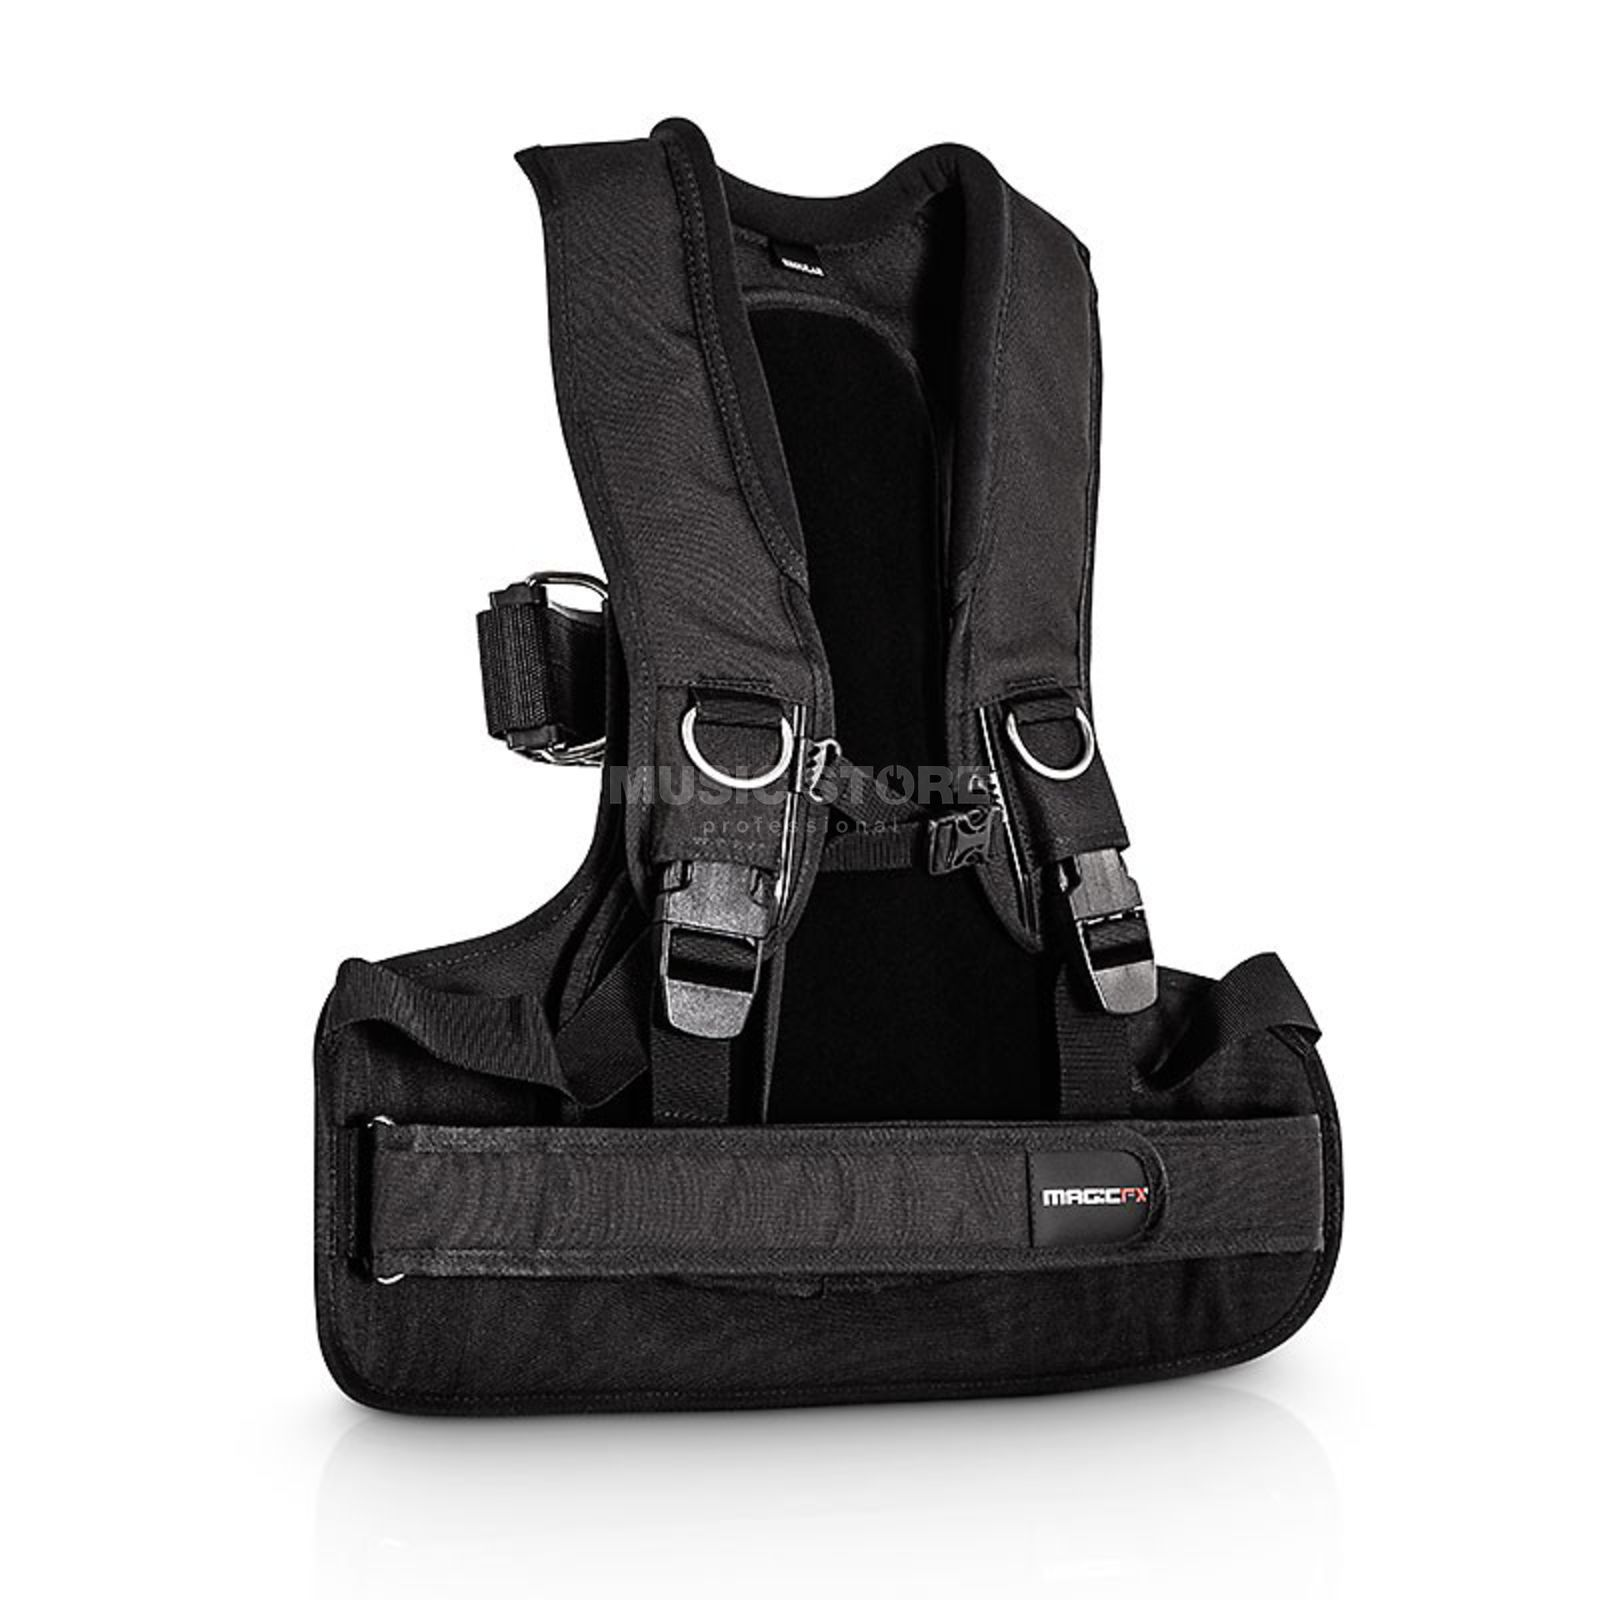 MagicFX CO2 Back Pack Produktbillede